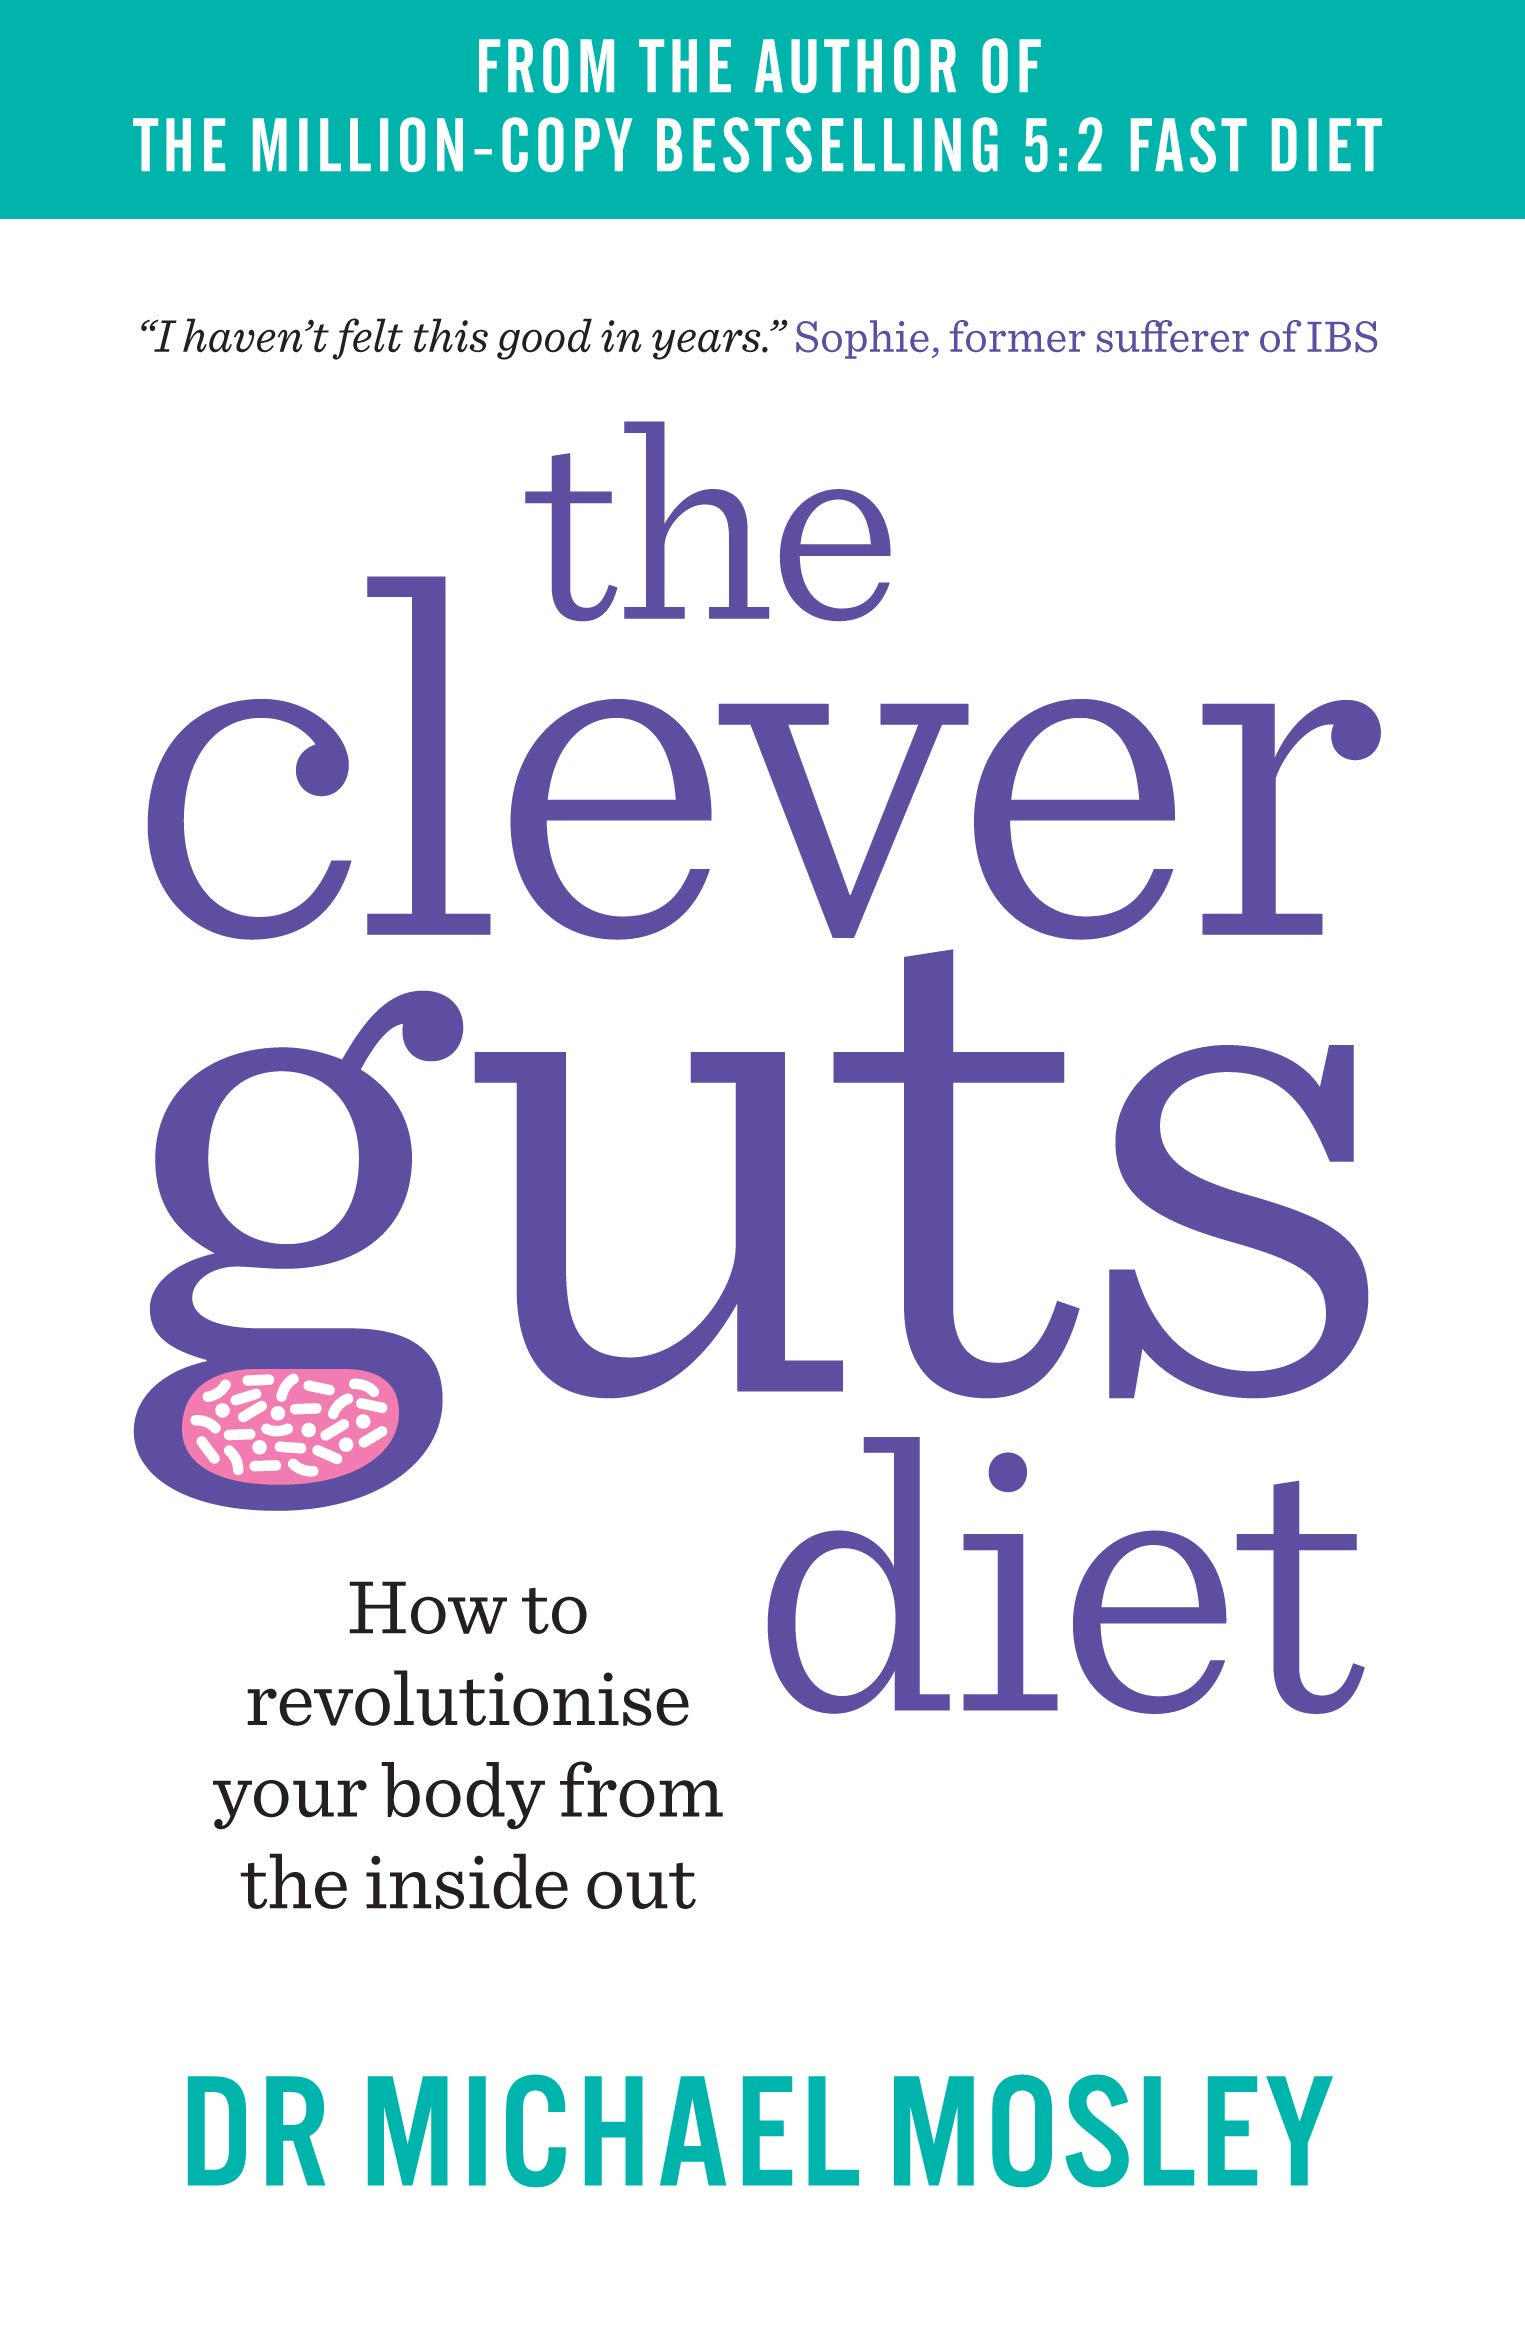 The Clever Guts Diet: How to Revolutionise Your Body from the Inside Out  Paperback – May 4, 2017